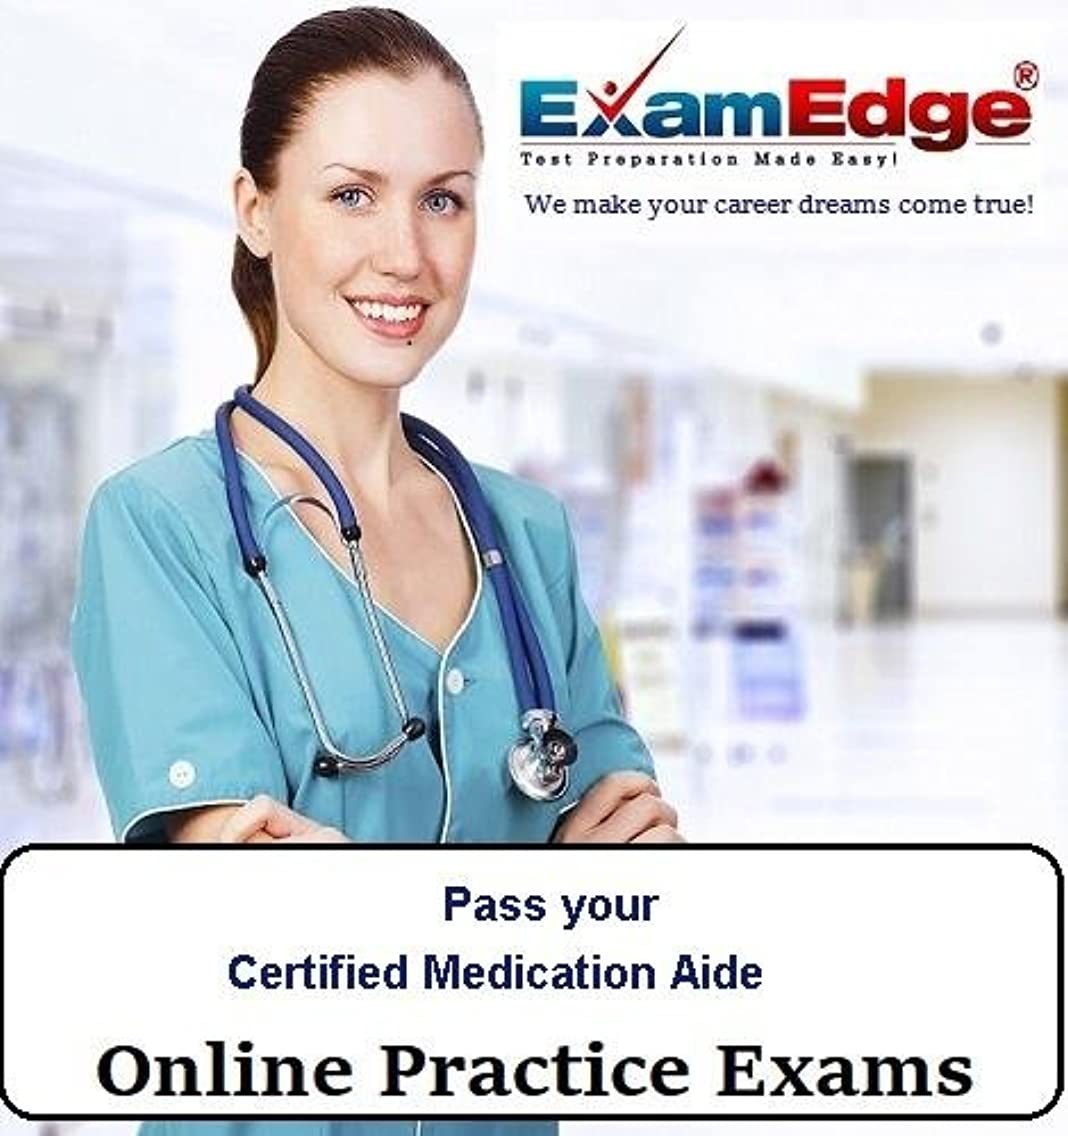 Pass your Certified Medication Aide (15 Practice Tests)